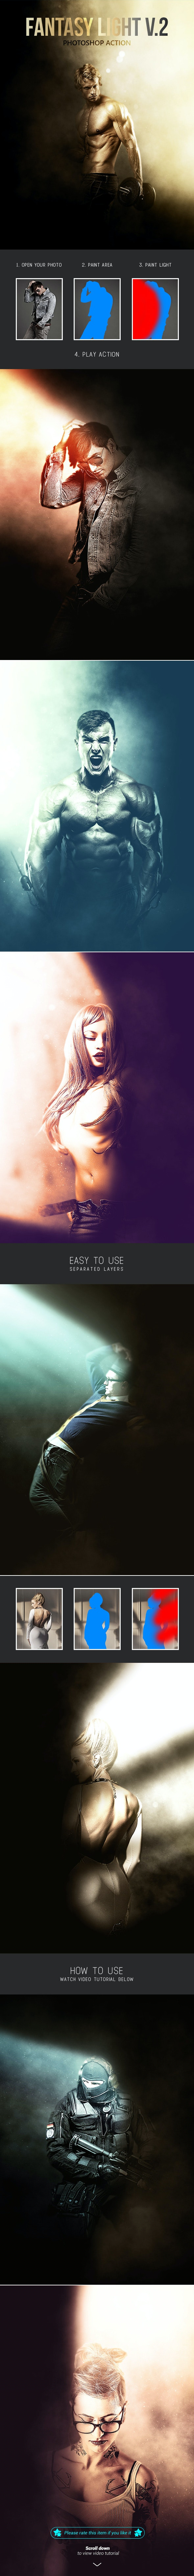 Fantasy Light v.2 - Photoshop Action - Photo Effects Actions